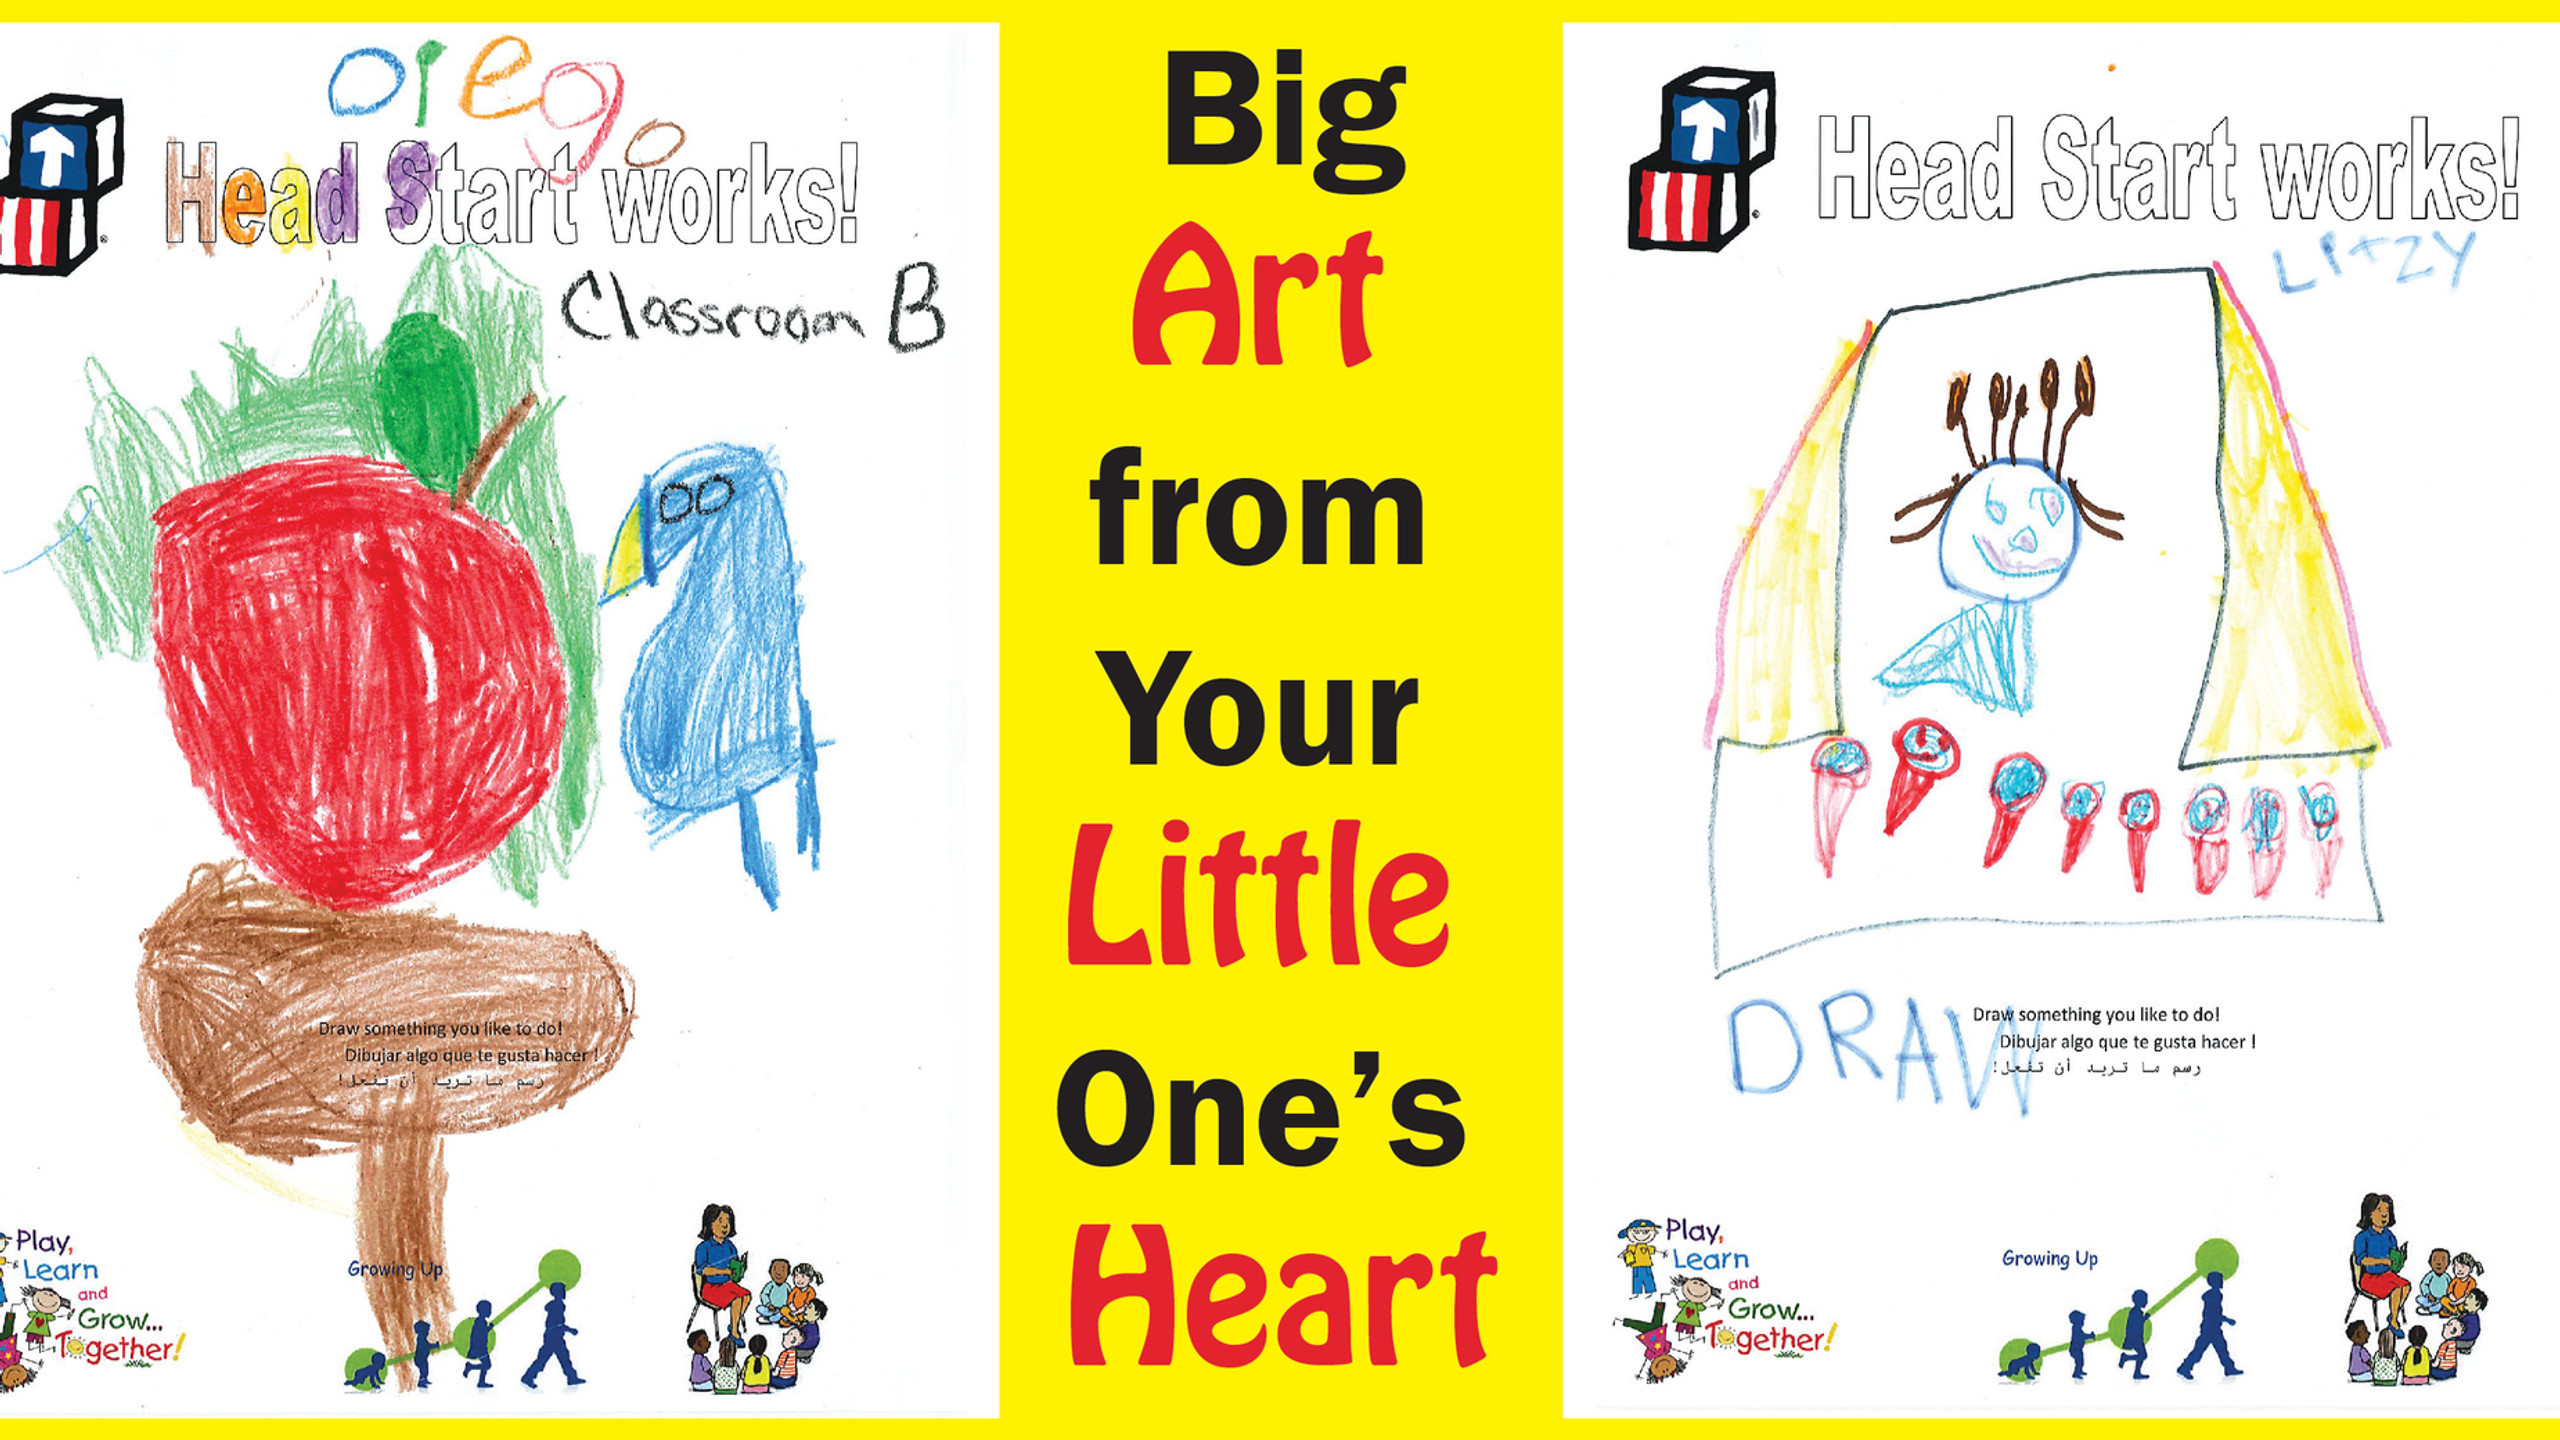 Inspire Your Heart With Art-01